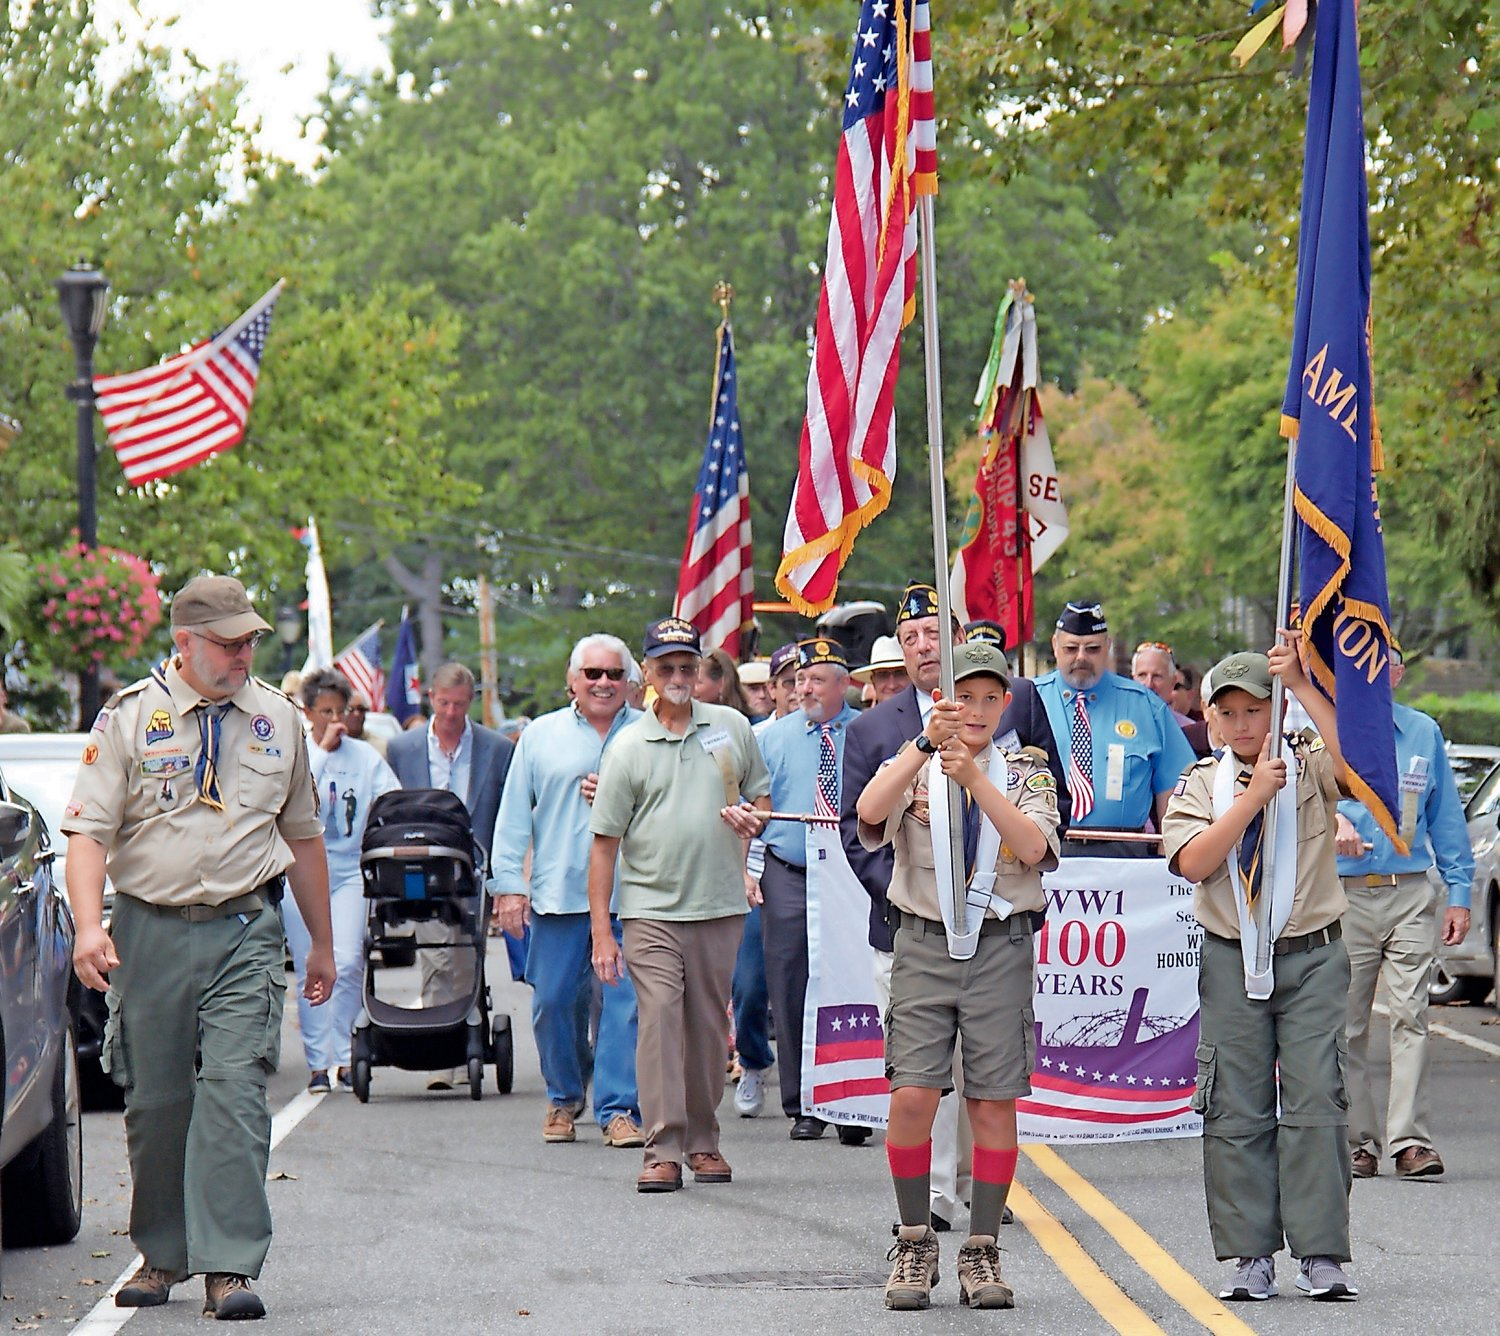 Boy Scout Troop 43 members Jared White, 12, front left, and Paolo Romito, 11, front right, led the parade.